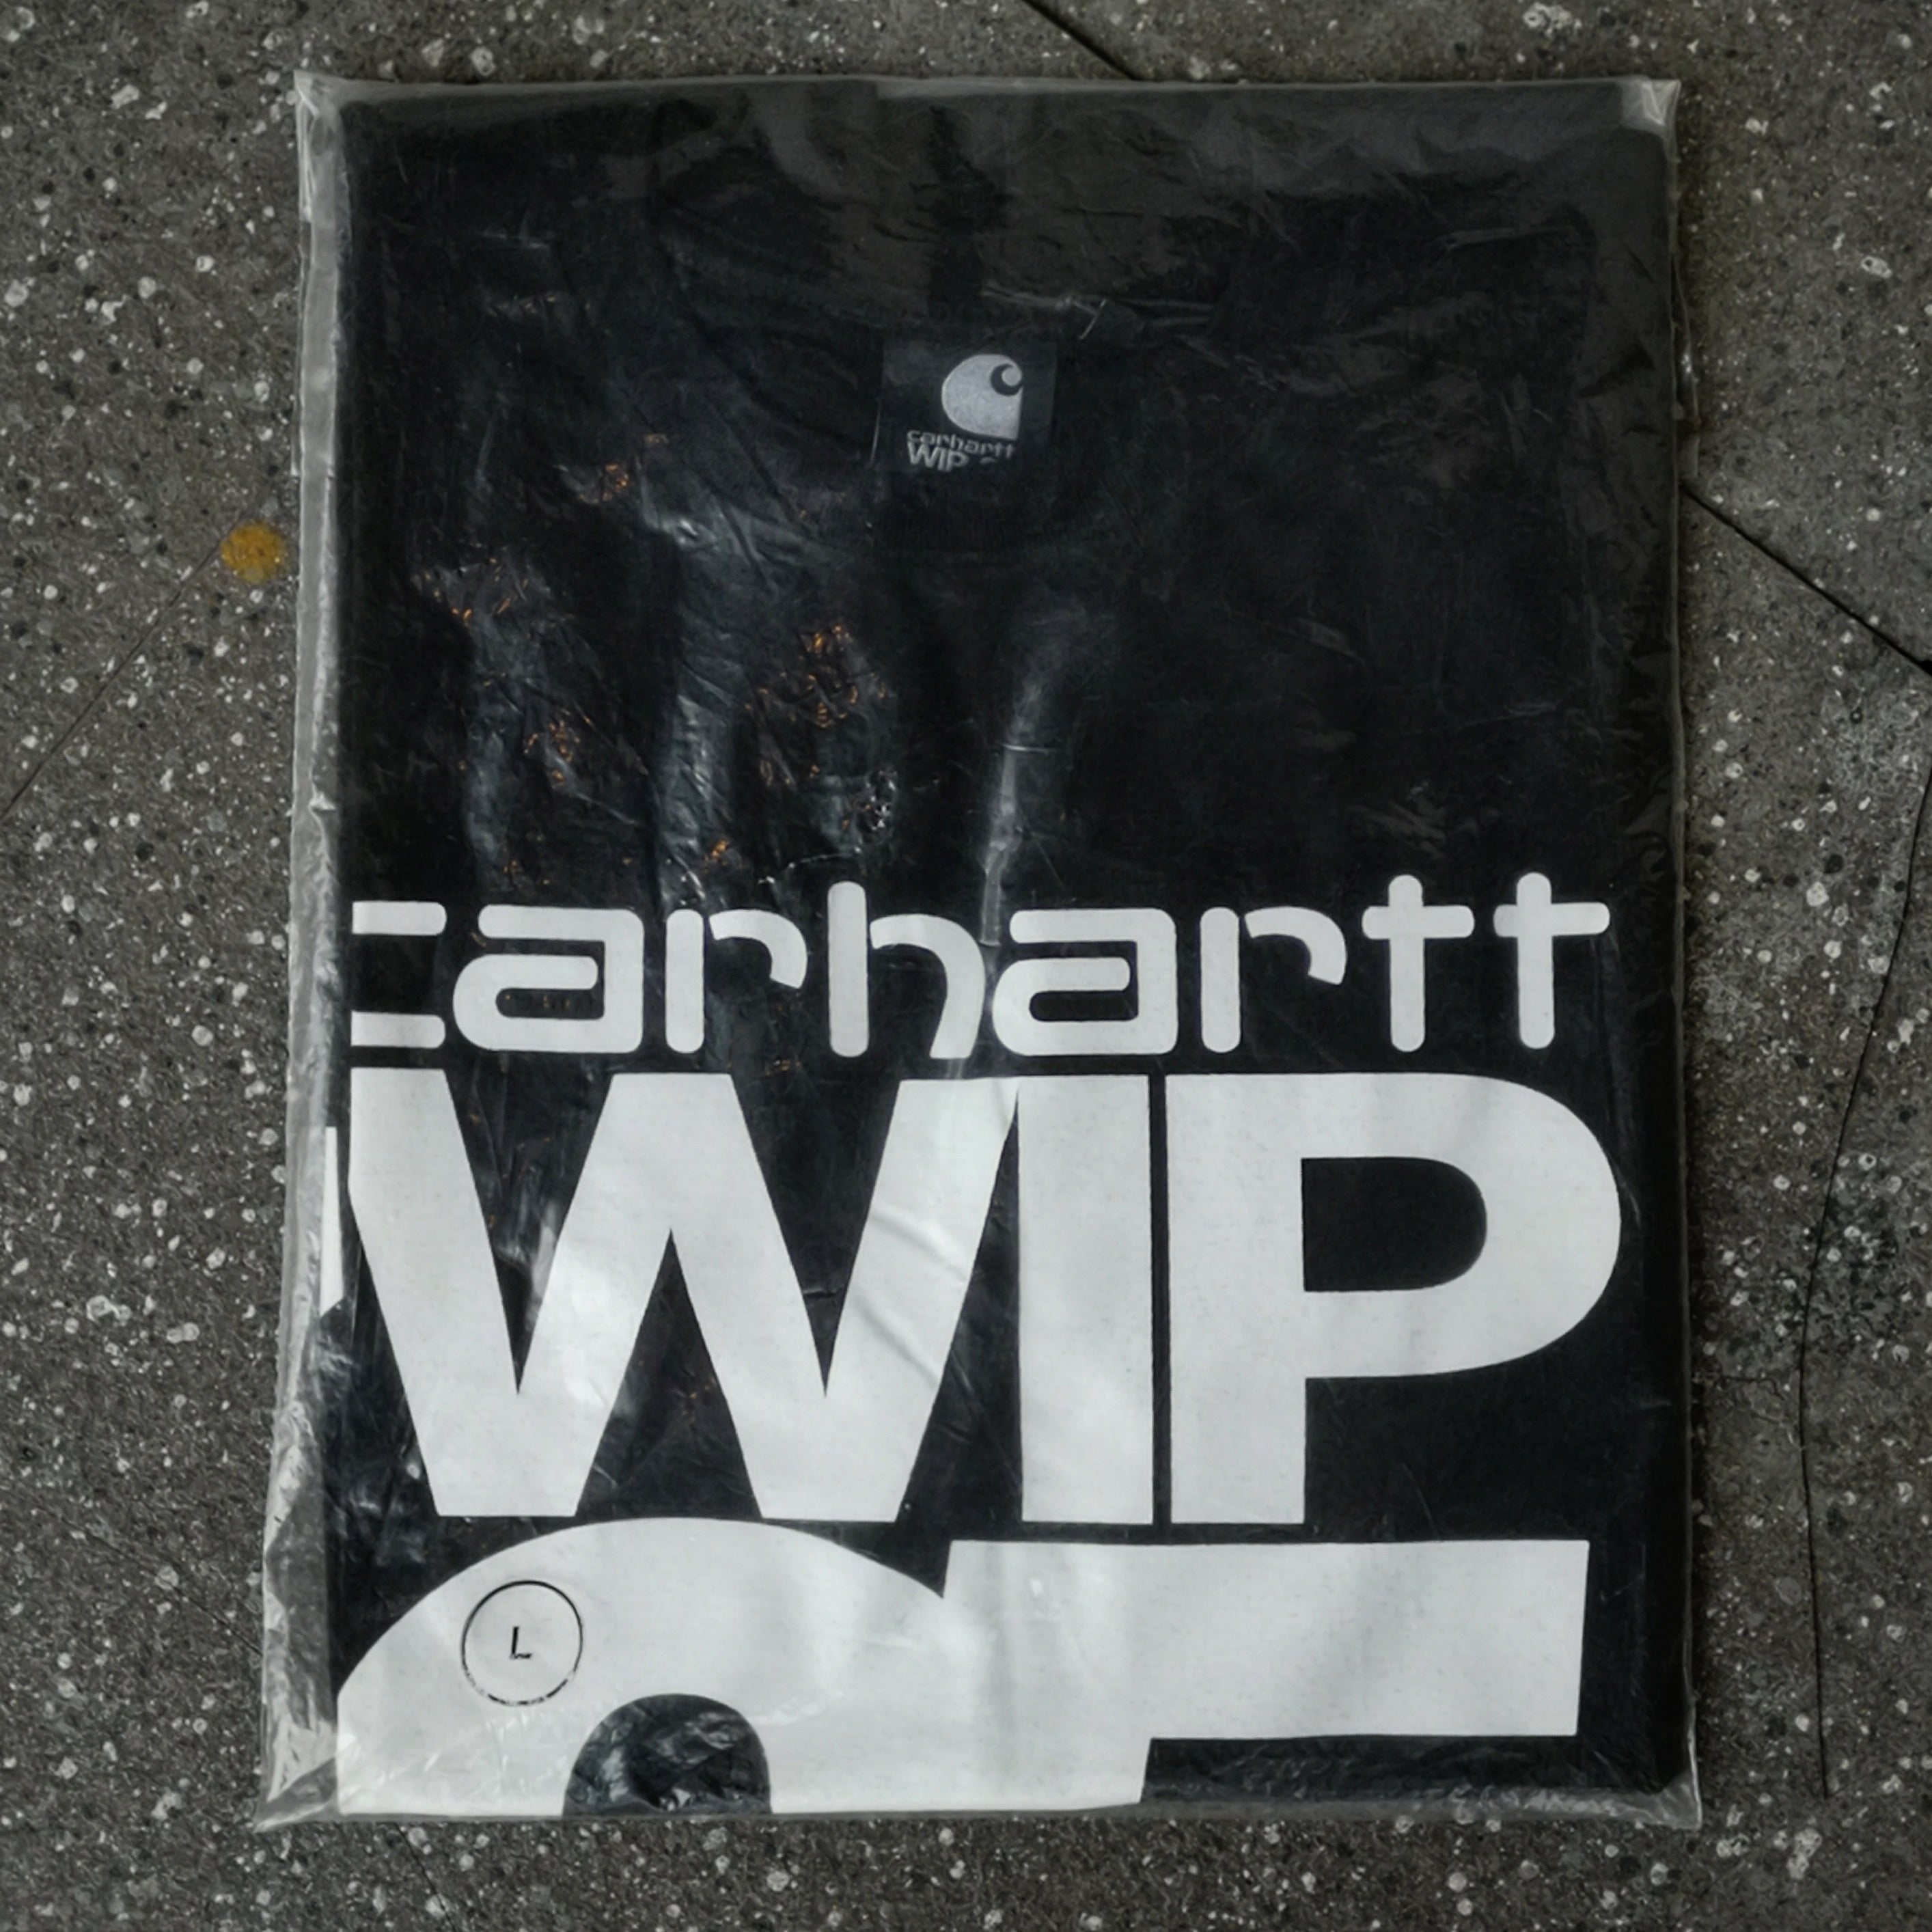 Carhartt WIP 25th Anniversary Shirt